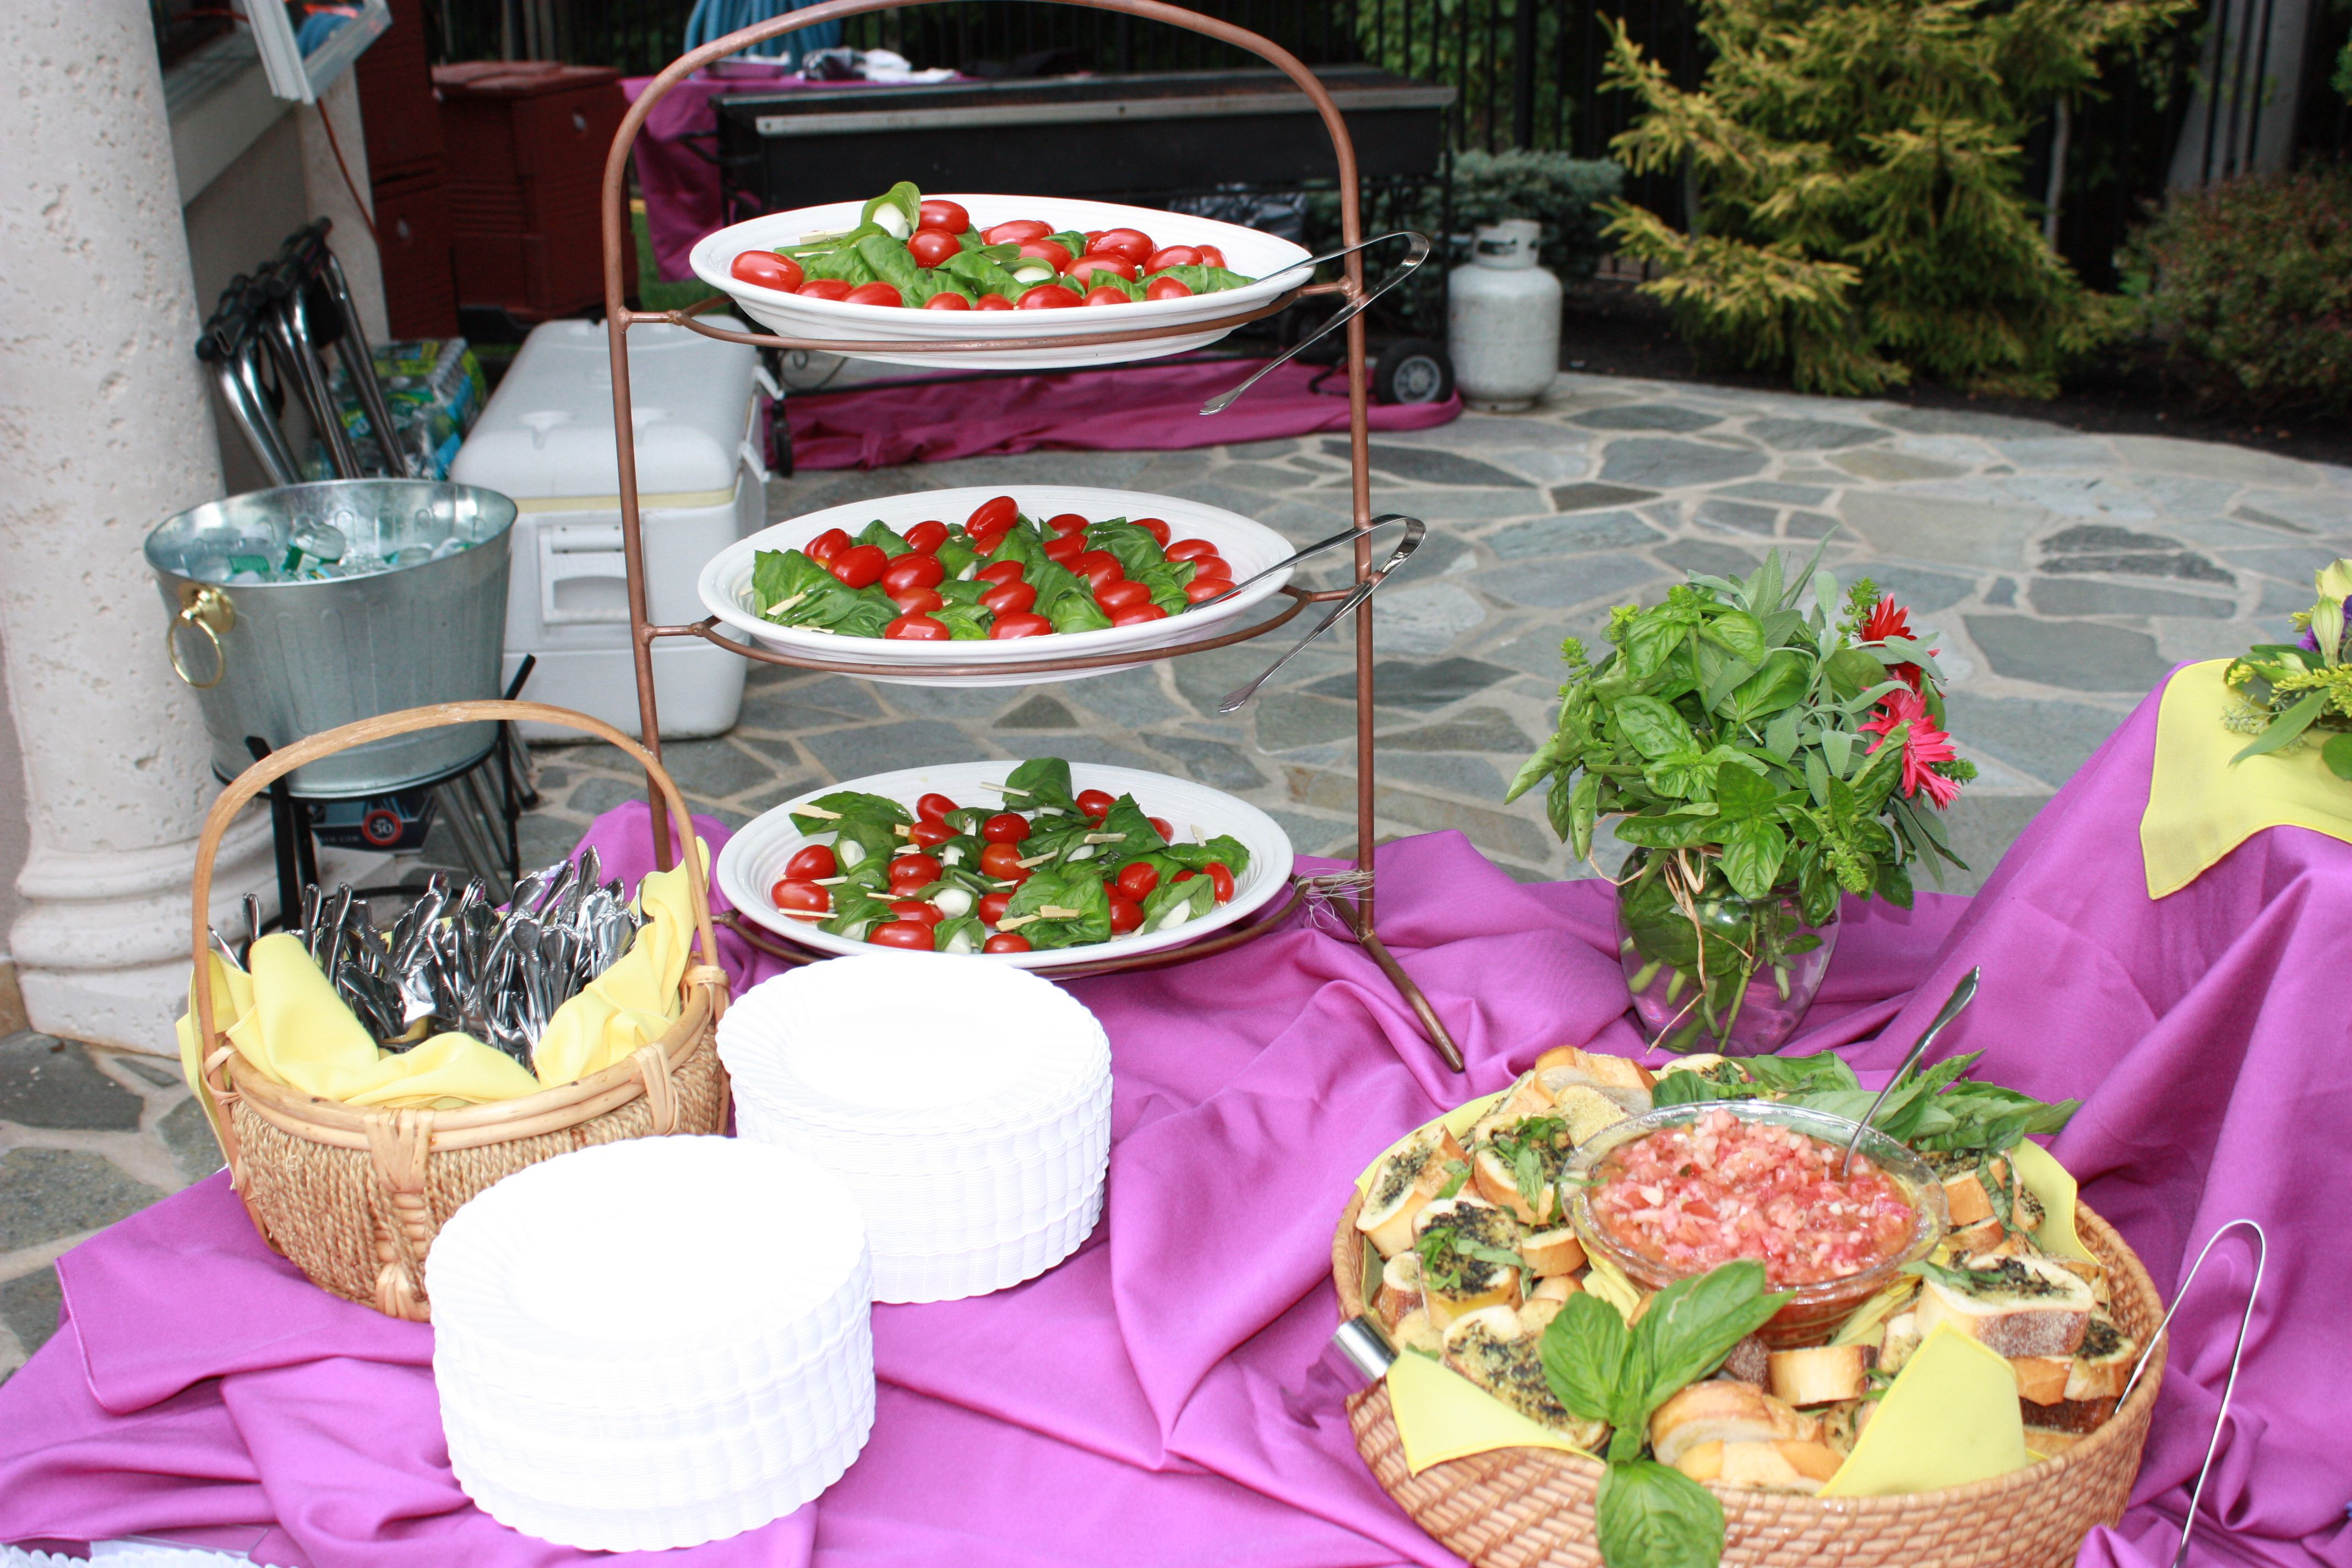 Tomato S In Season Catering Wedding Catering Banquet